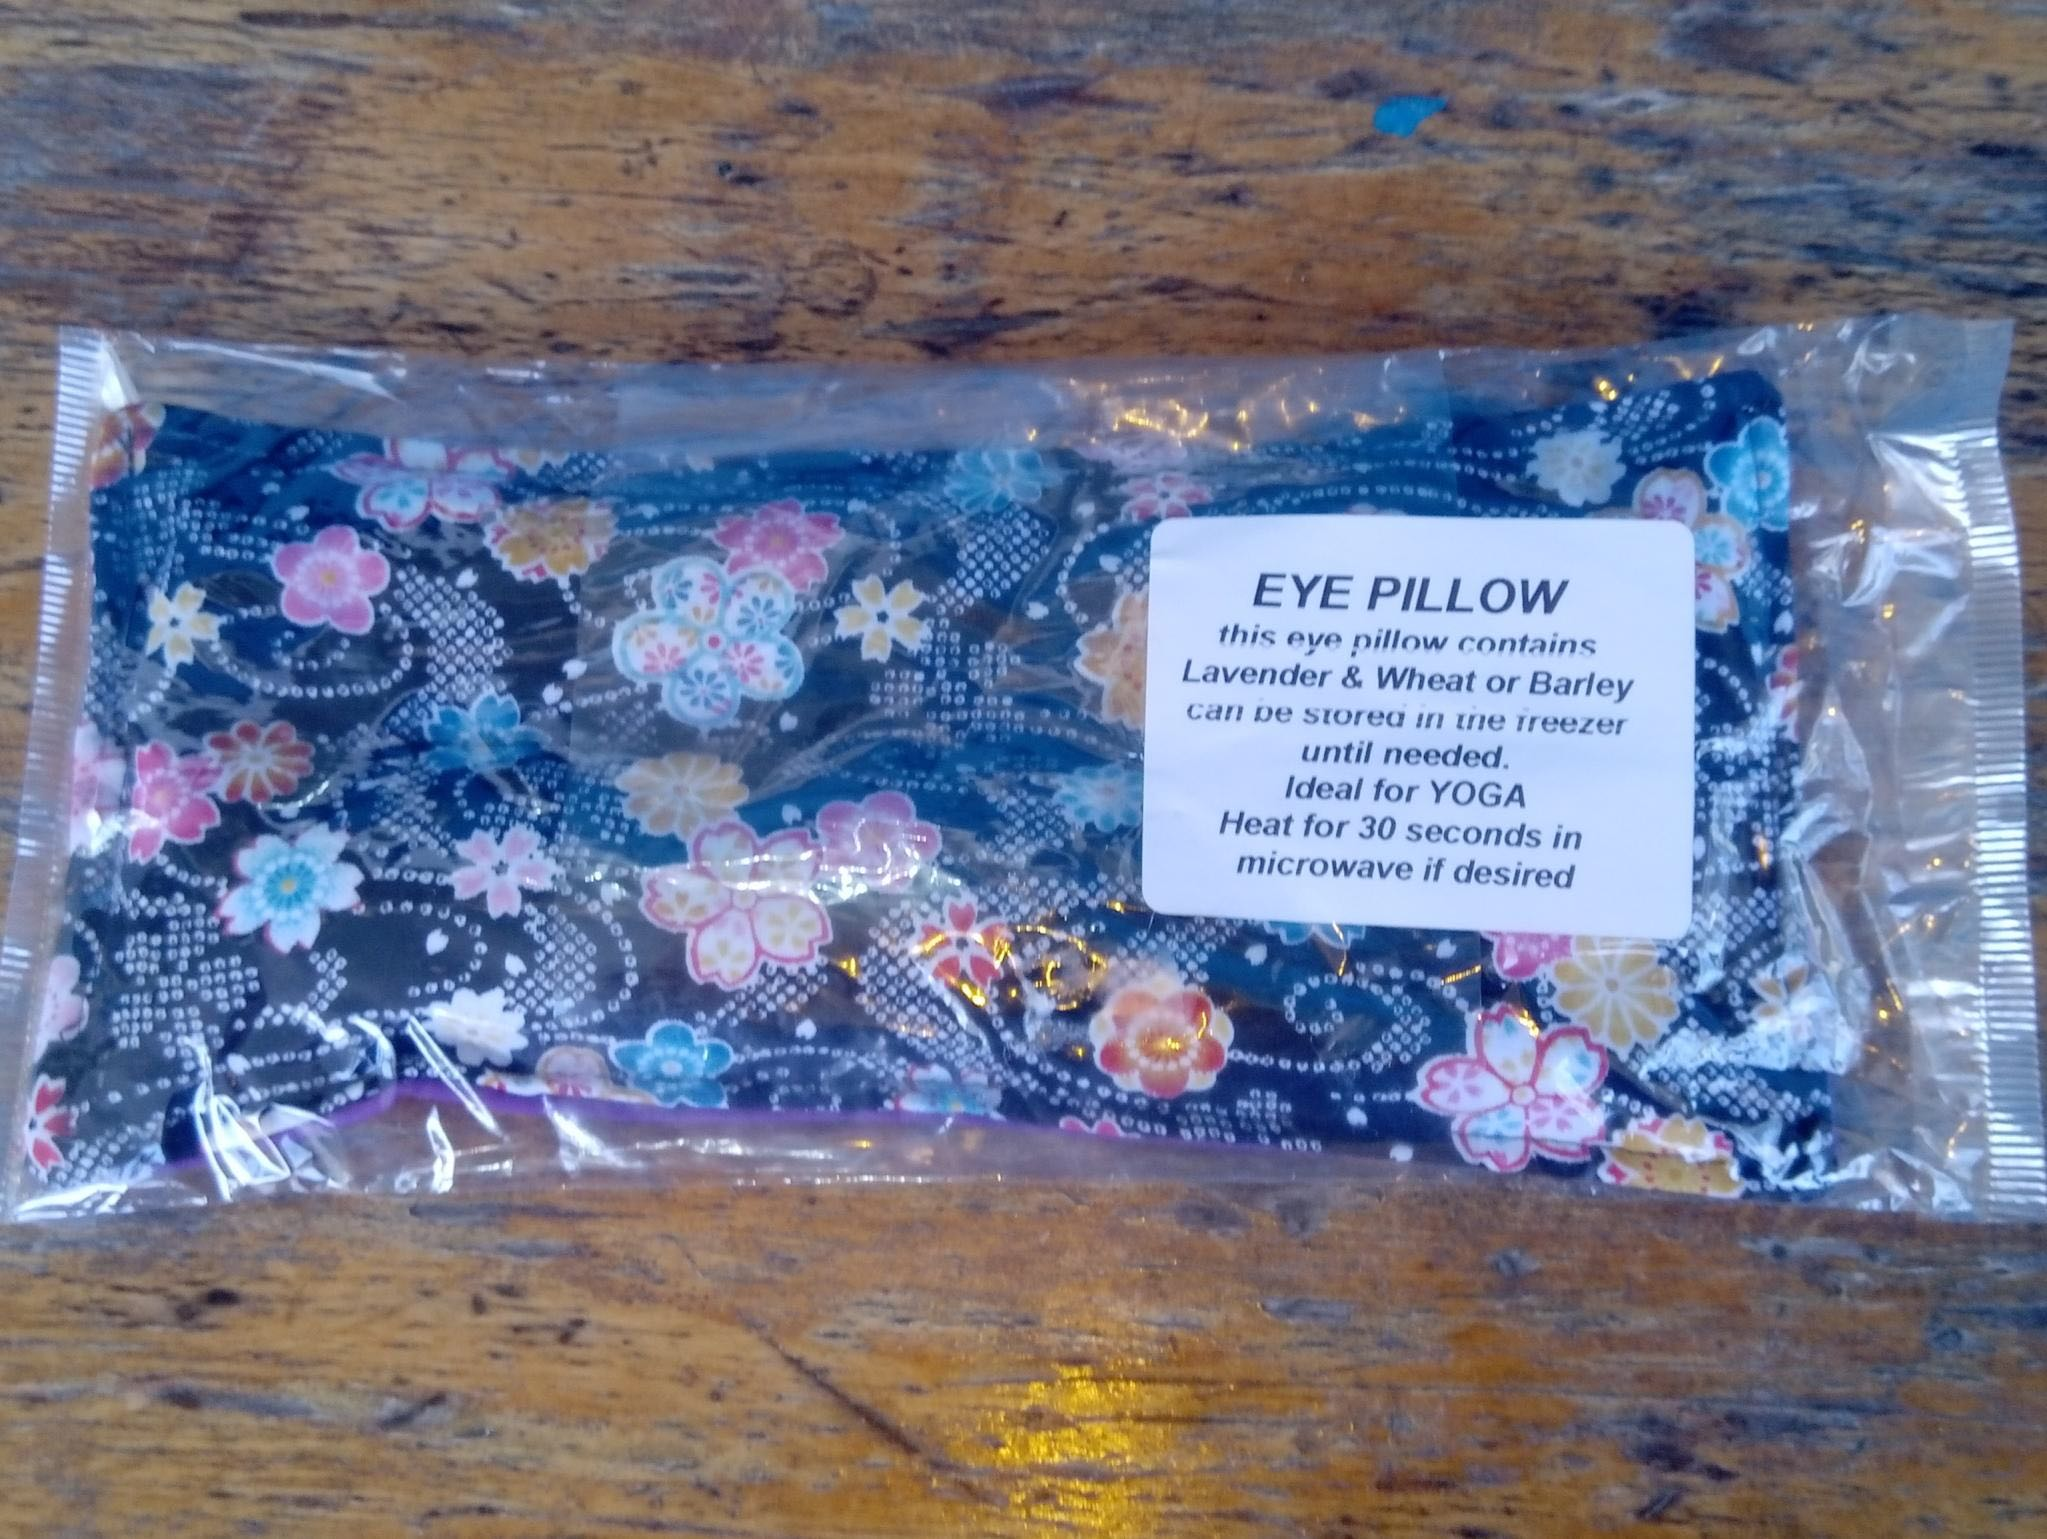 Photograph of Lavender Eye Pillow product